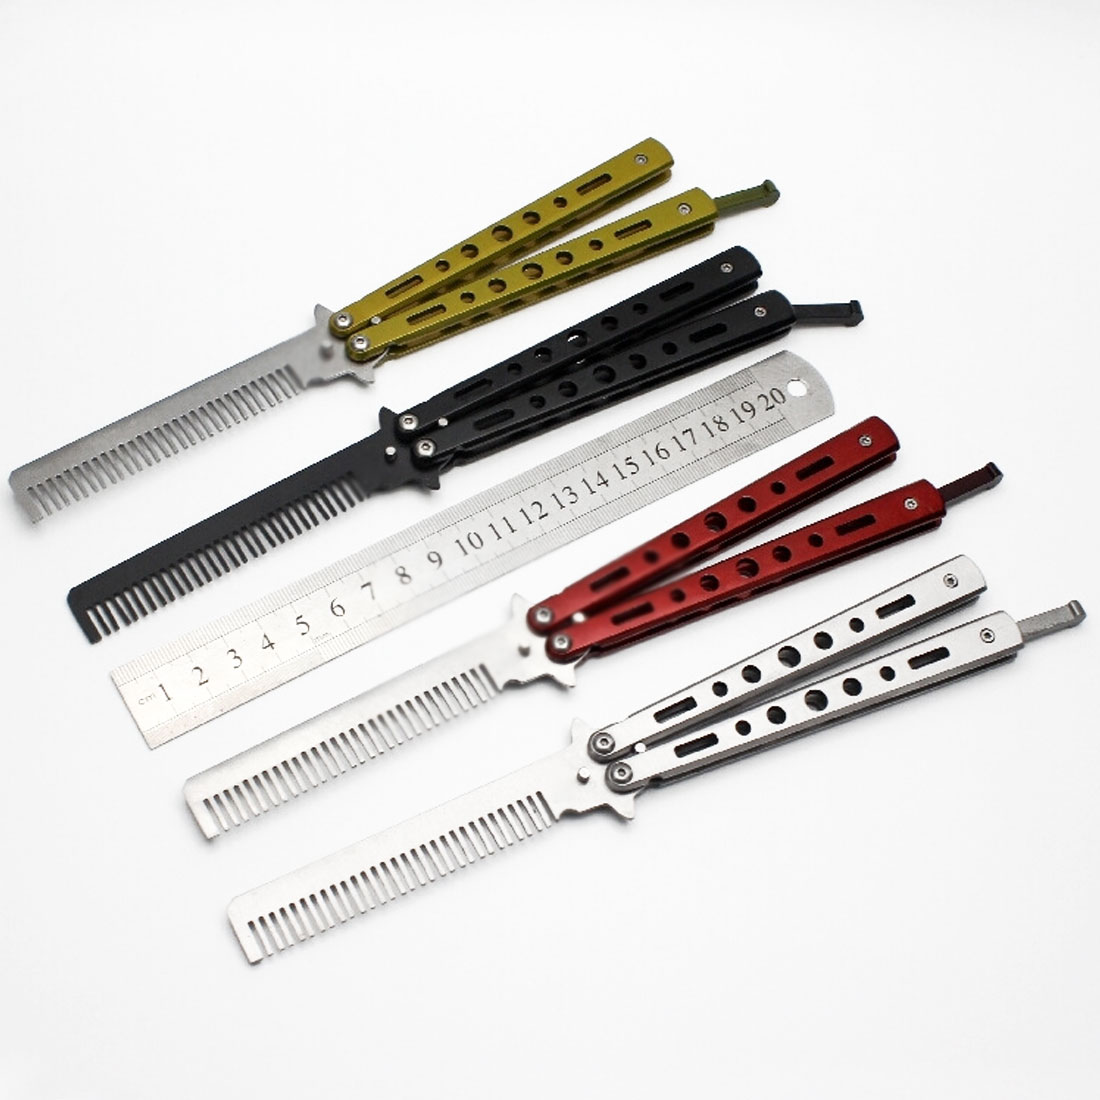 Butterfly Knife Import Products From Amazon Usa Products